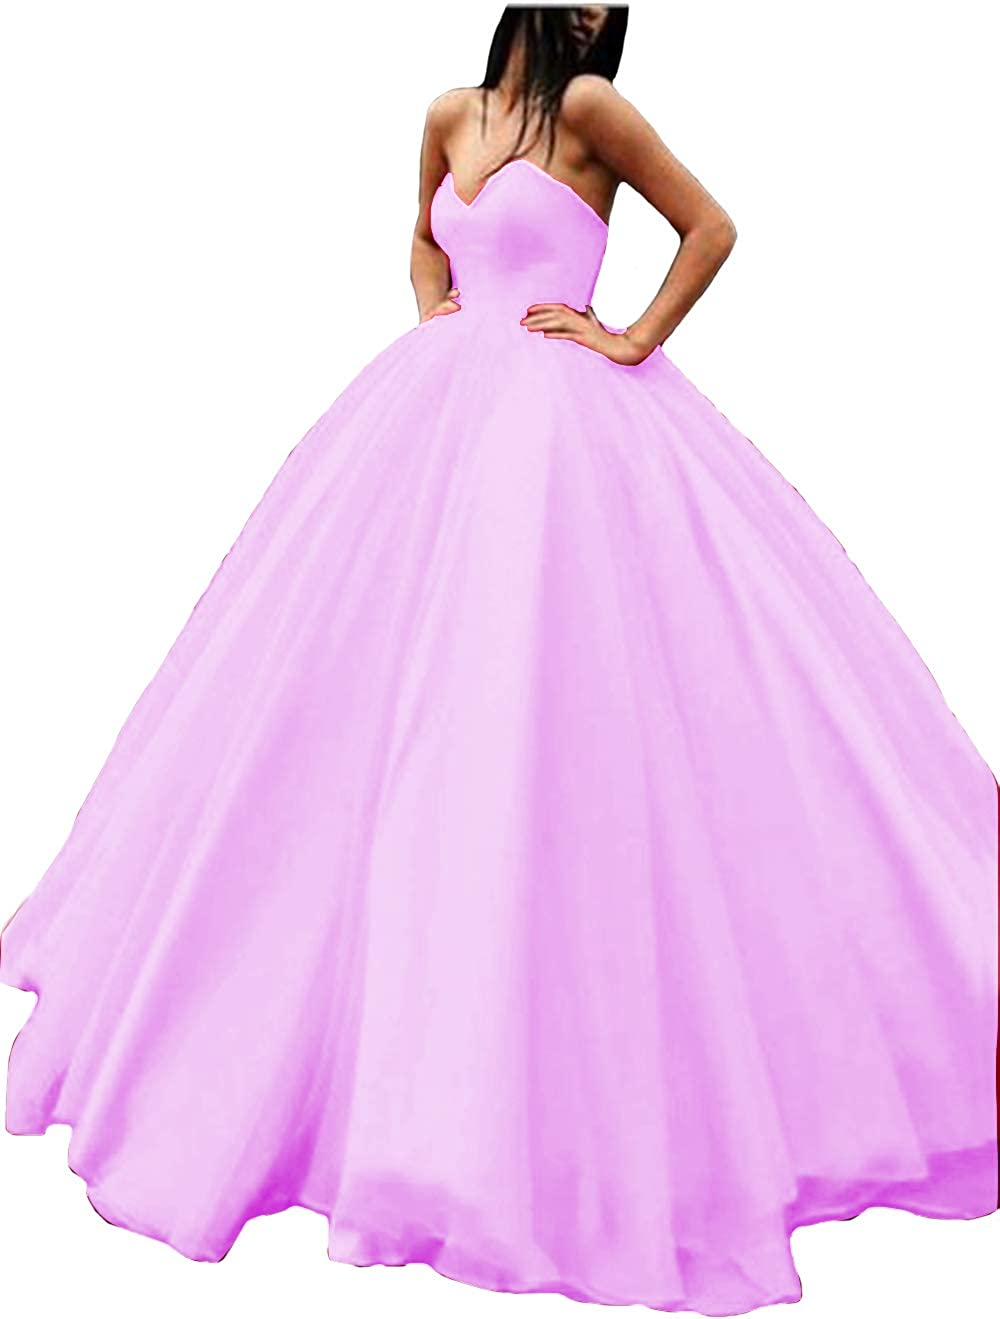 purplec IVYPRECIOUS Sweetheart A Line Puffy Prom Dresses Satin with Tulle Long Evening Ball Gown